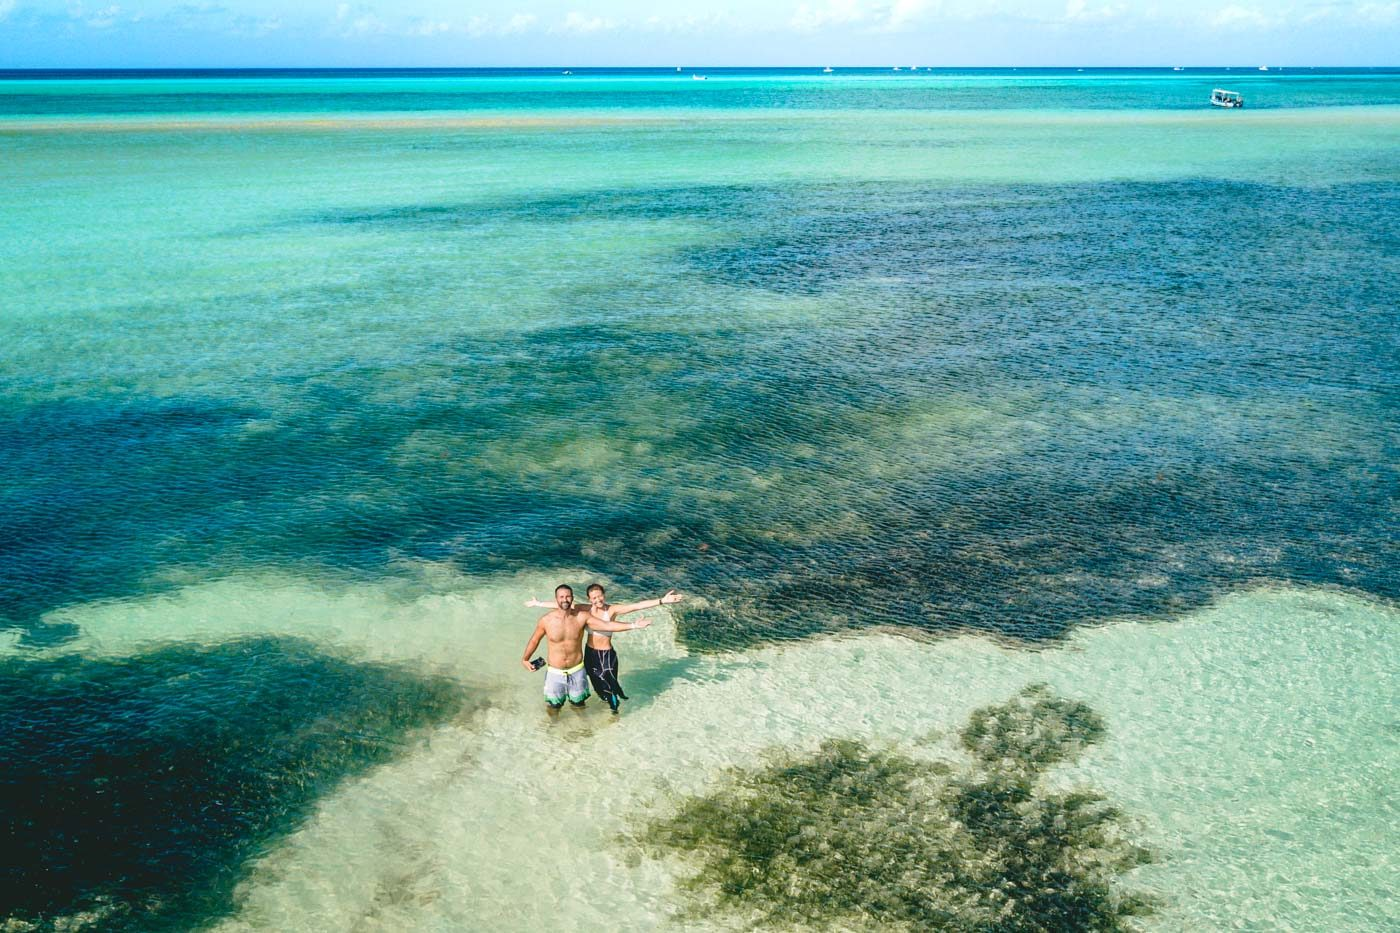 Enjoying crystal clear waters in Yucatan, Mexico